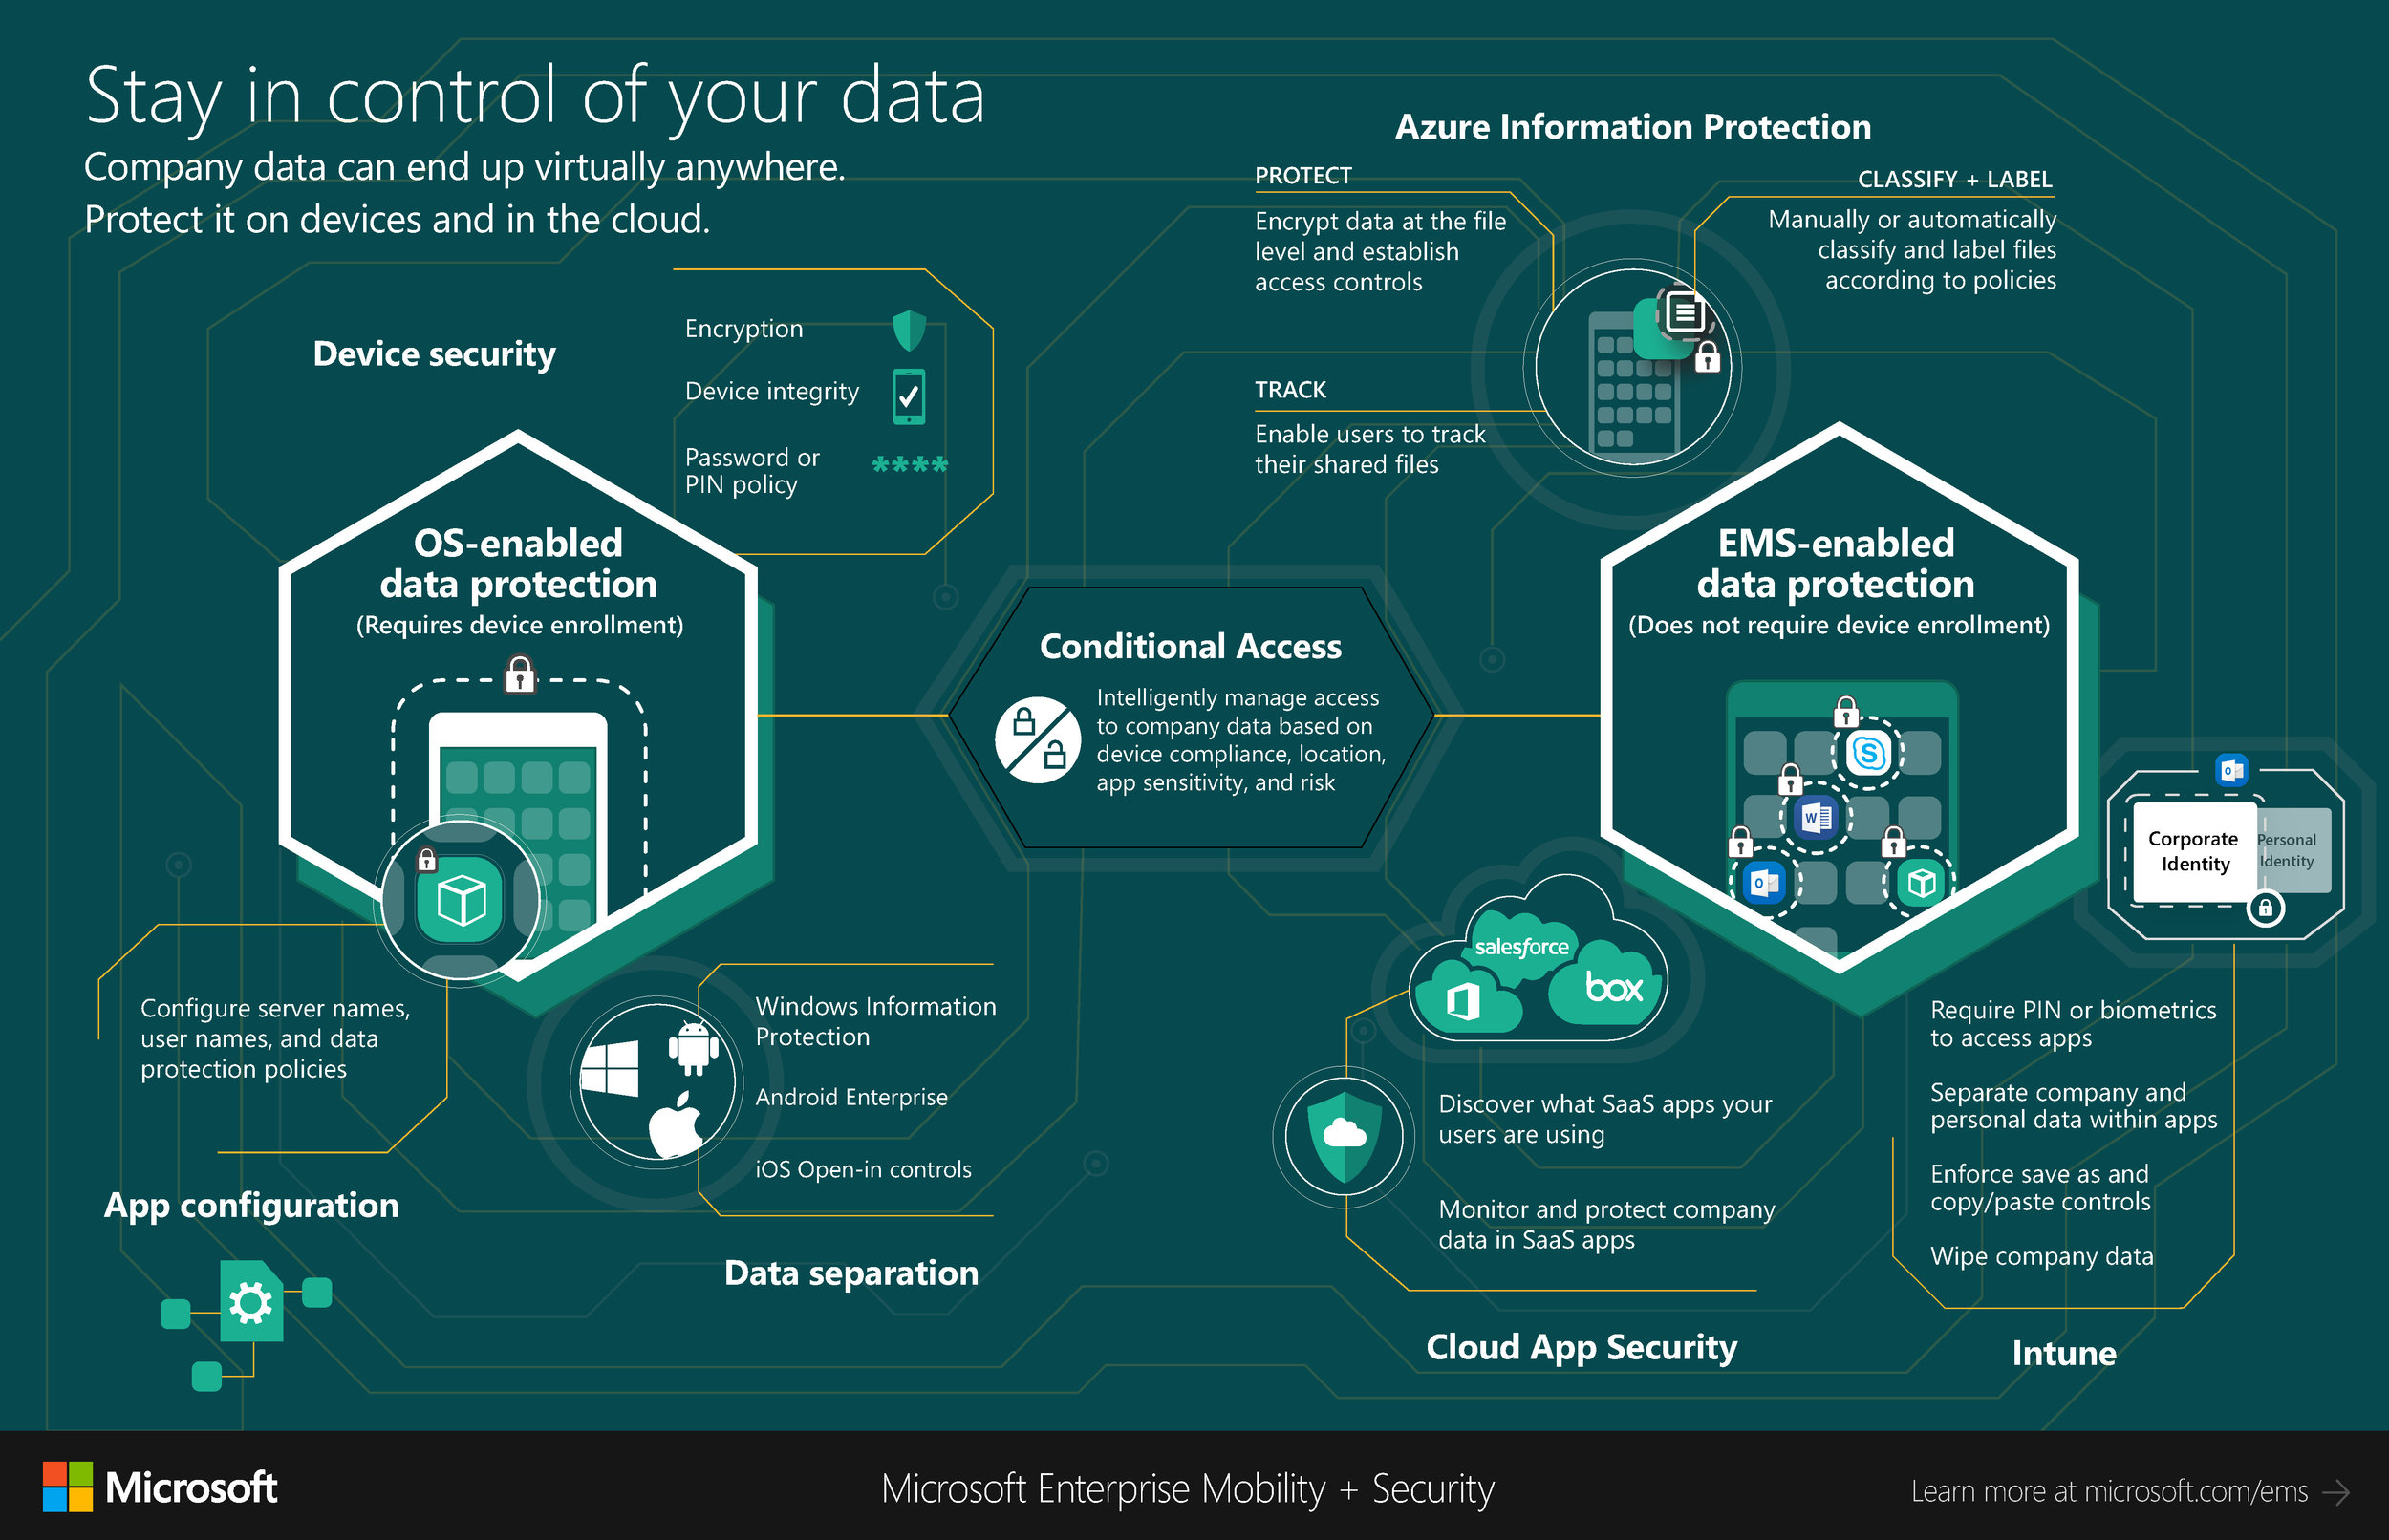 All_MSFT_Infographics_Page_05.jpg